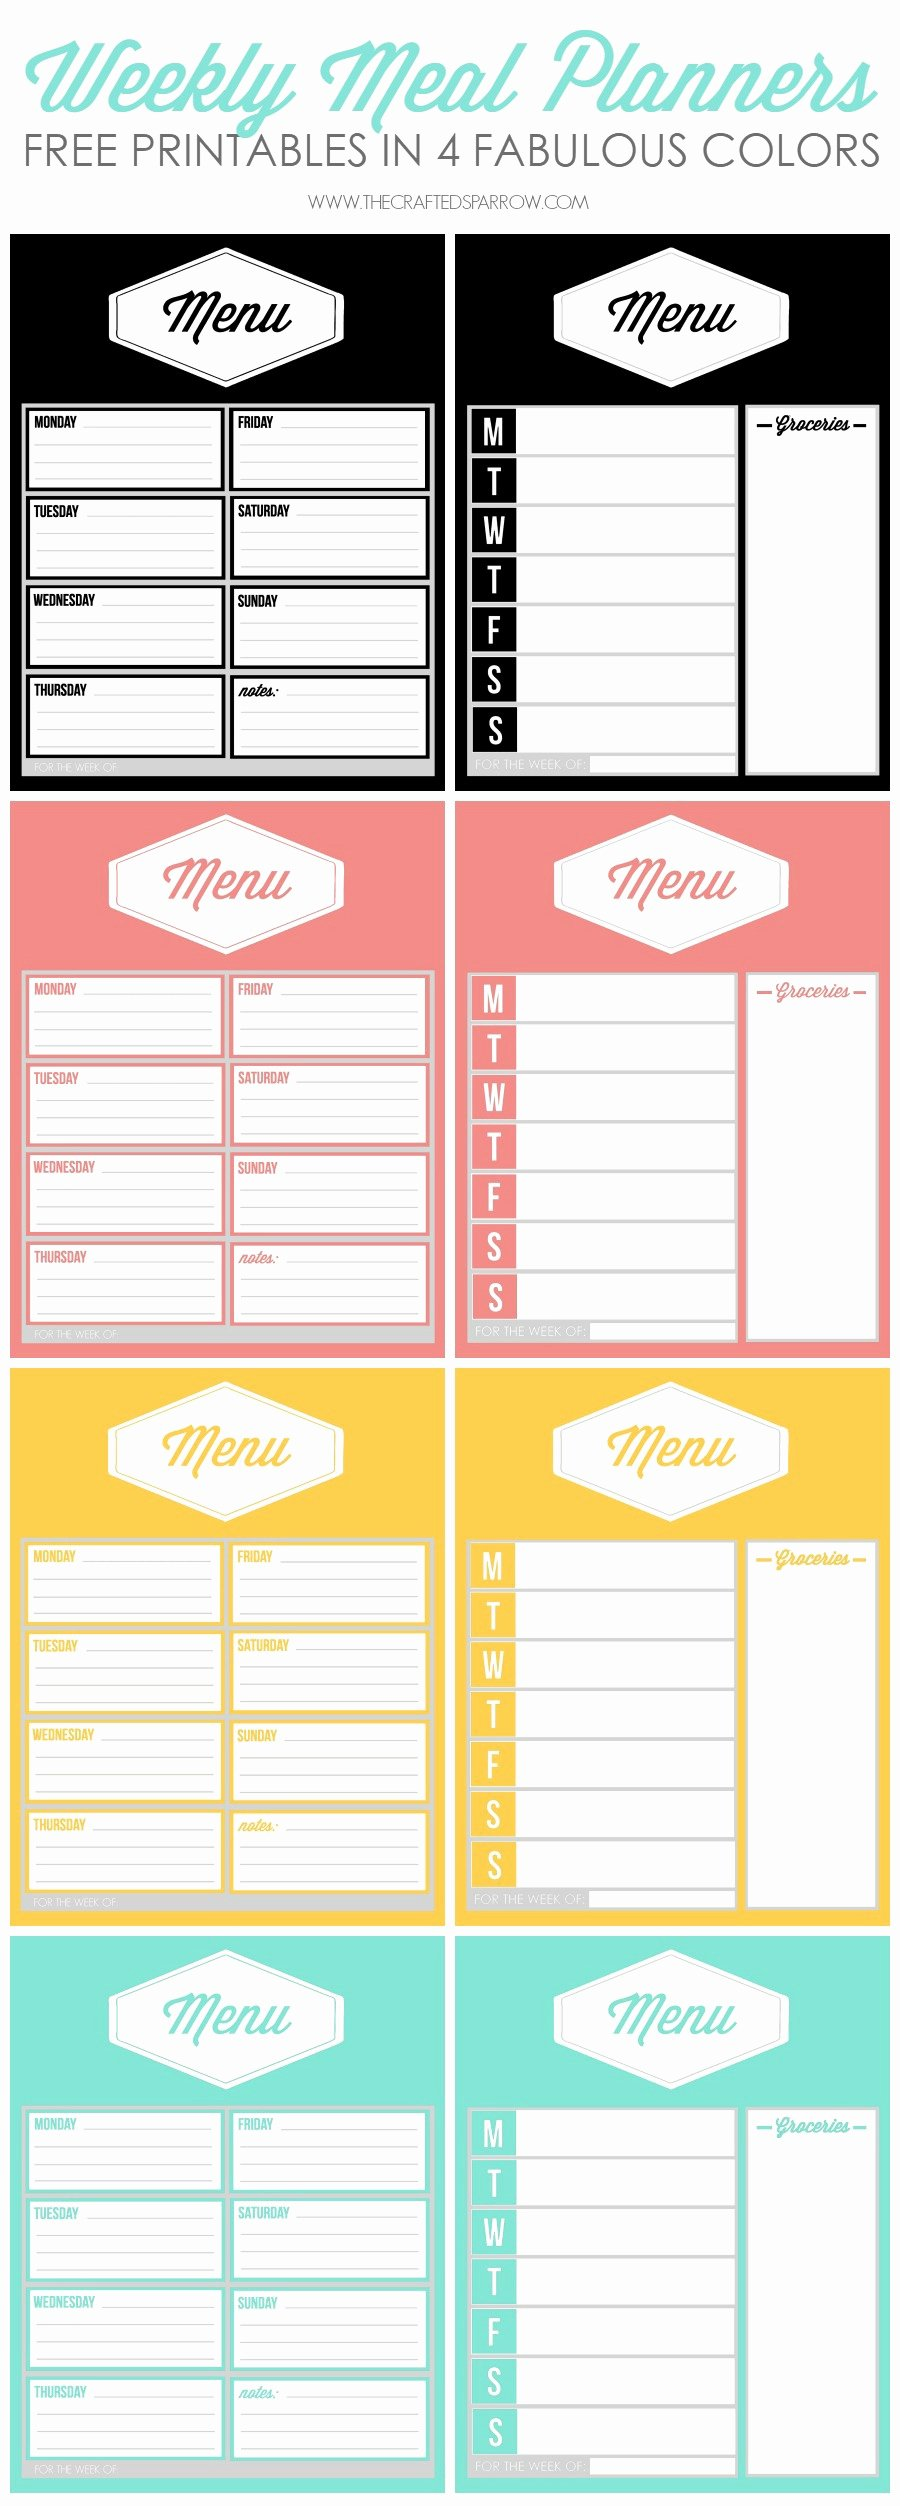 Weekly Meal Plan Template Inspirational Free Printable Weekly Meal Planners